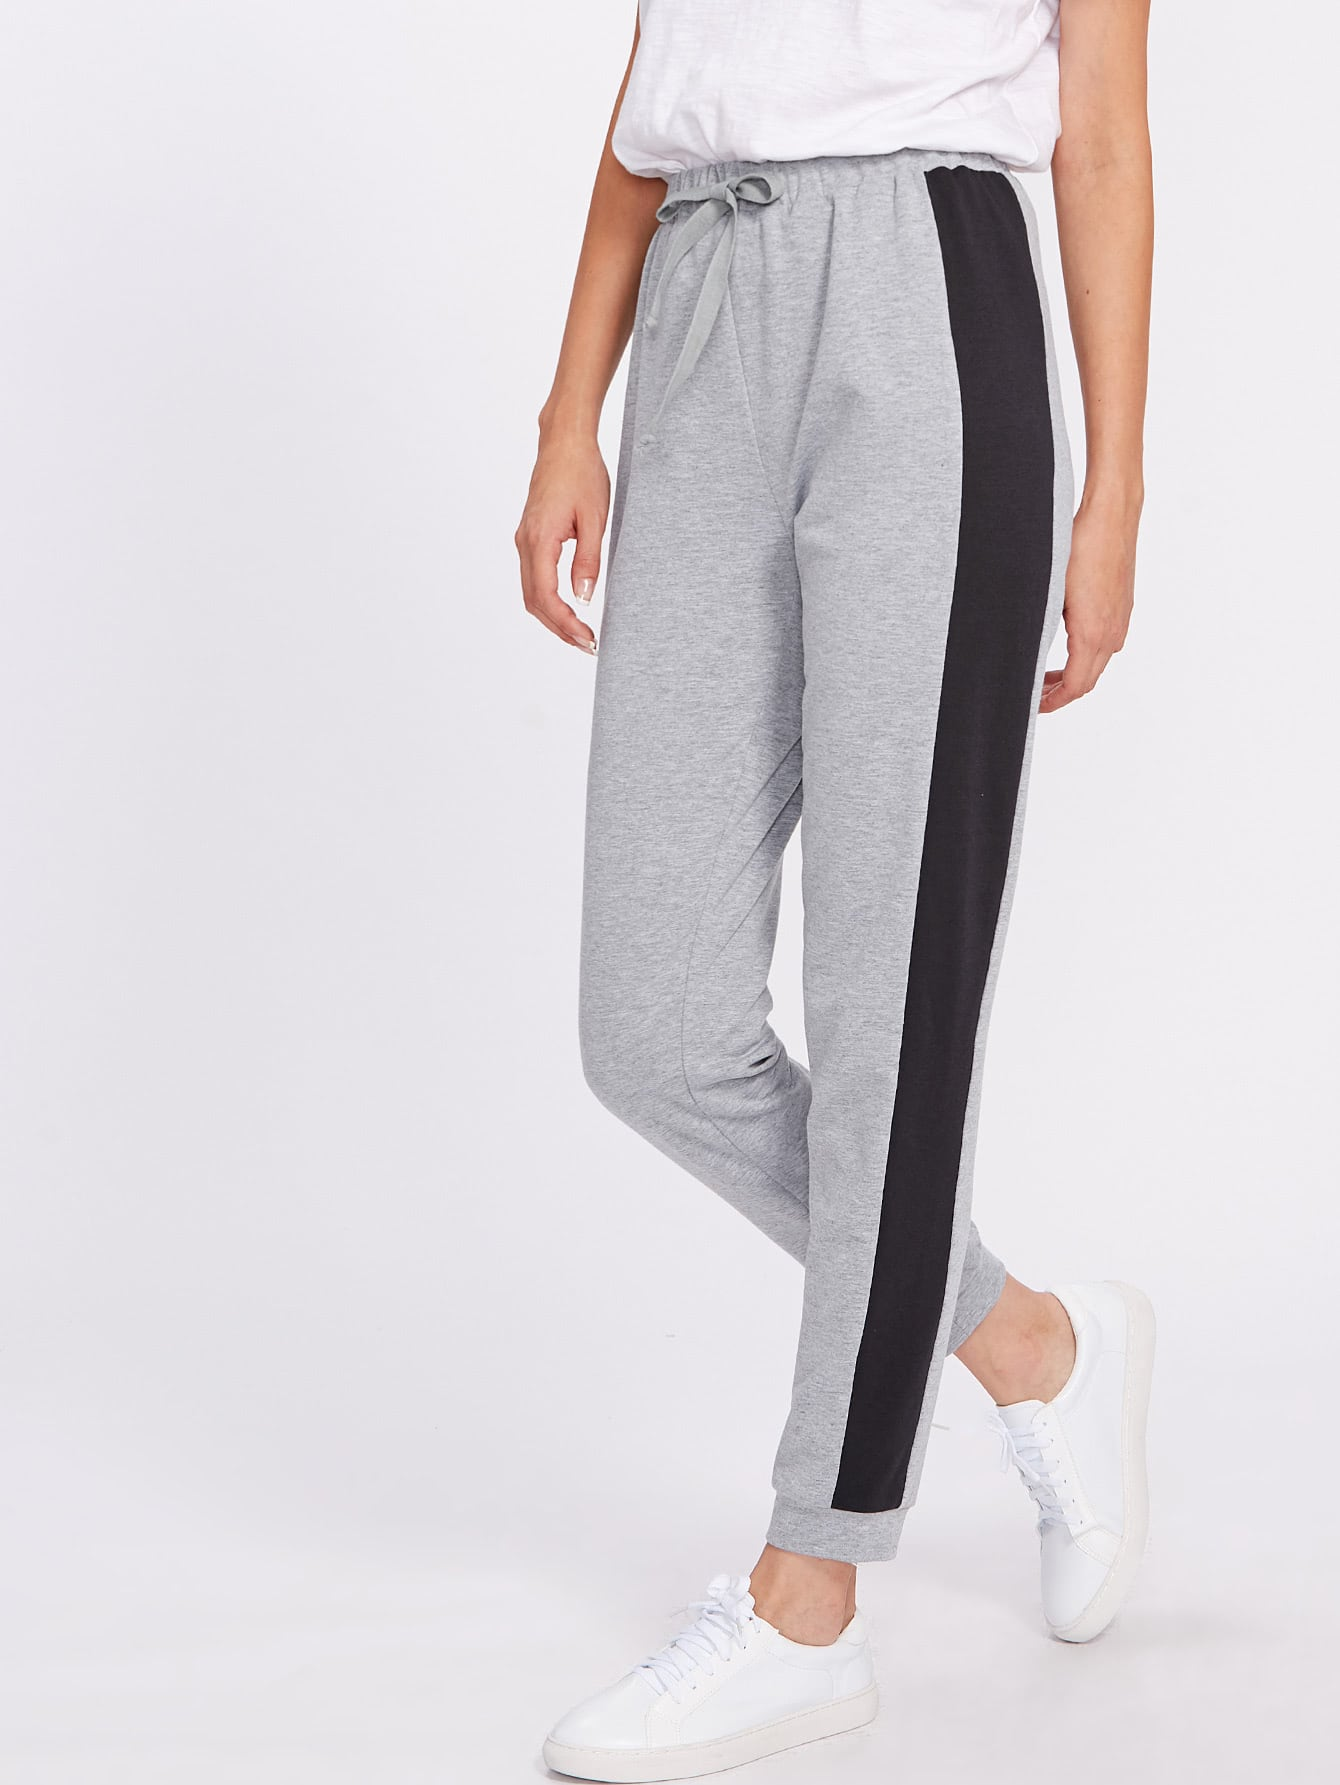 Contrast Panel Heather Knit Drawstring Sweatpants pants170718701